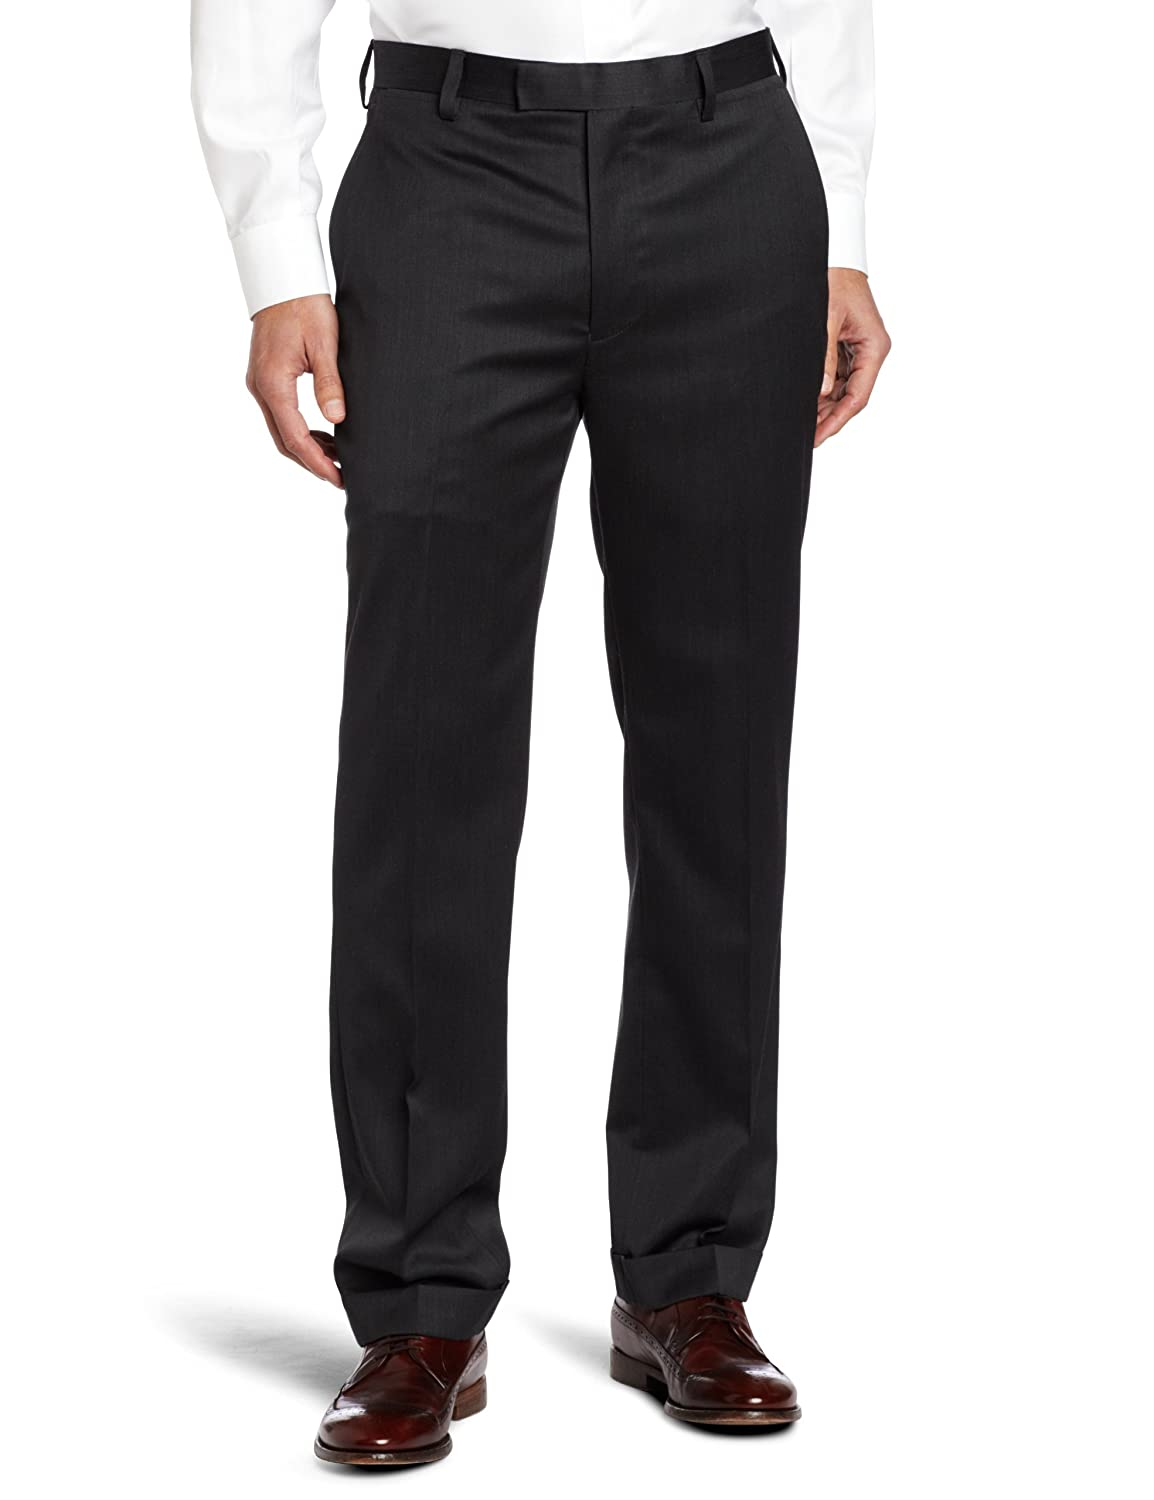 Louis Raphael mens Modern fit wool blend solid dress pant A288P 955